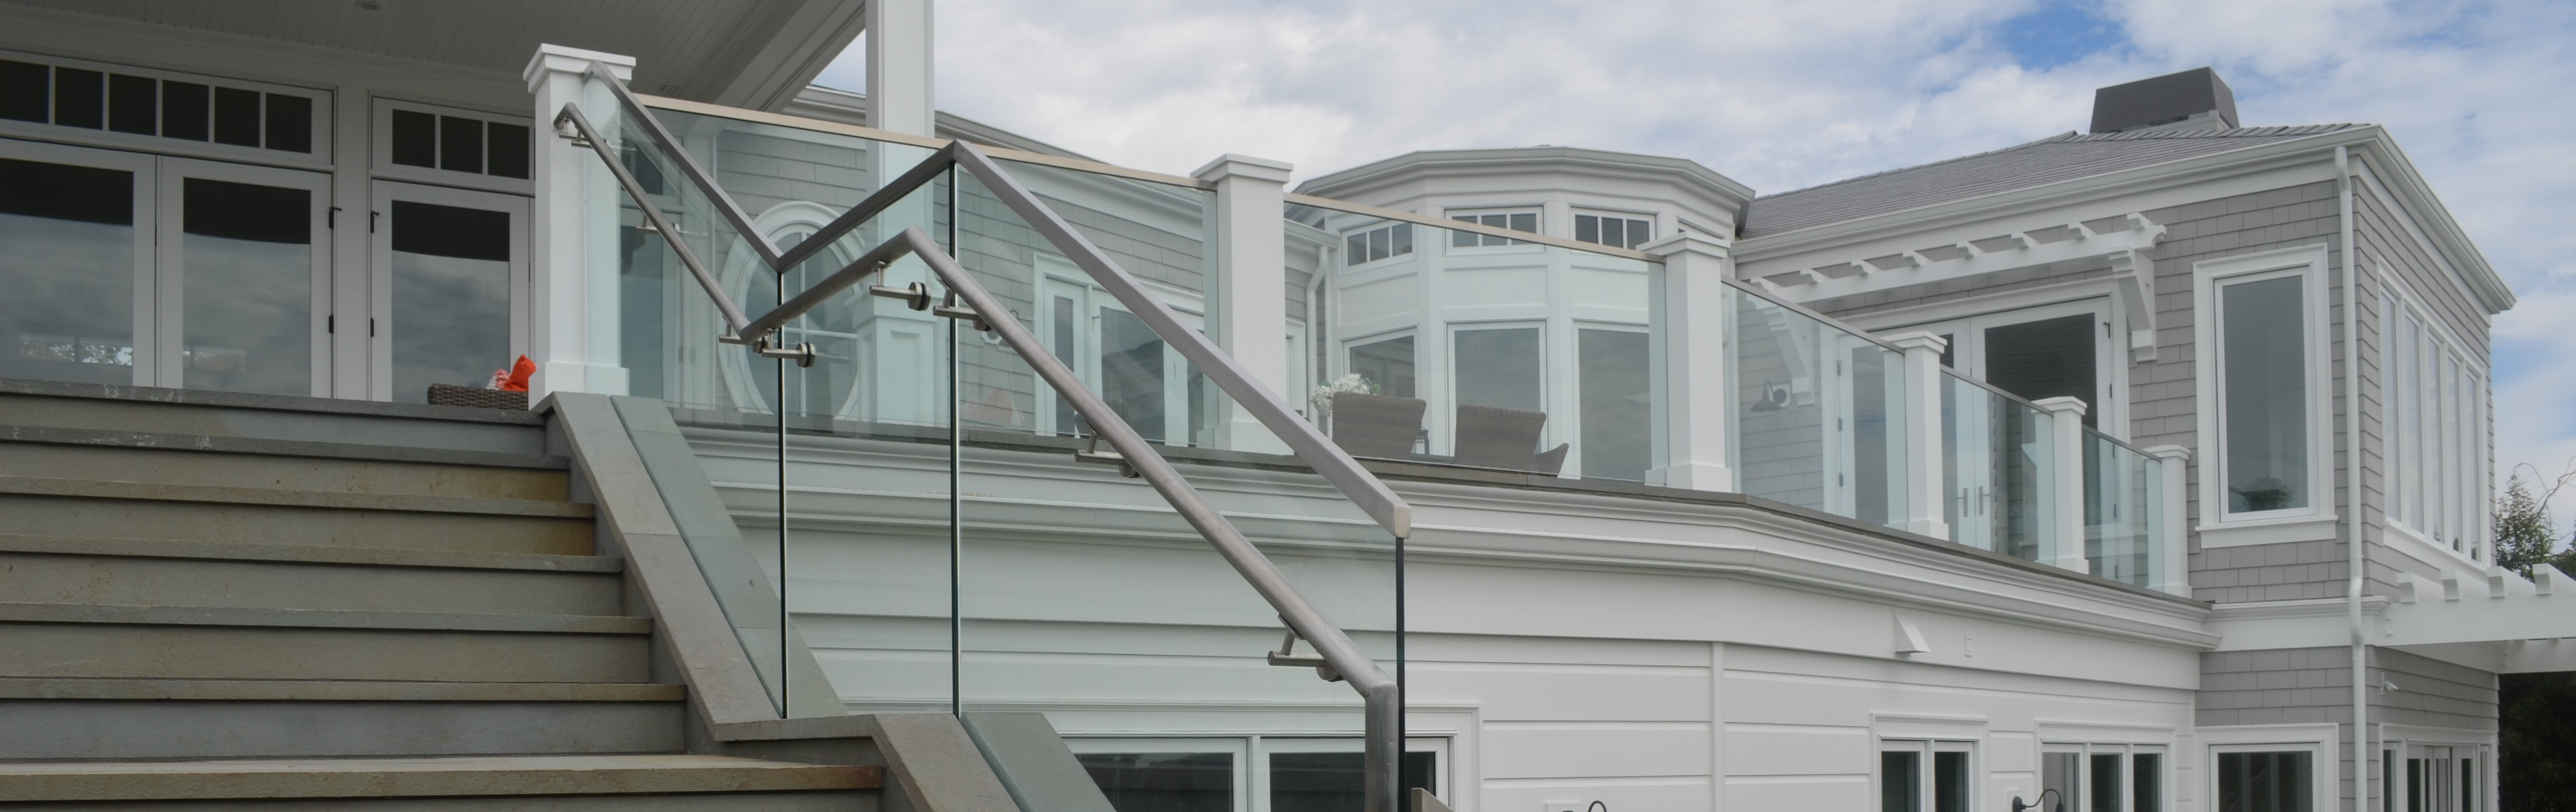 Commercial Glass Railings